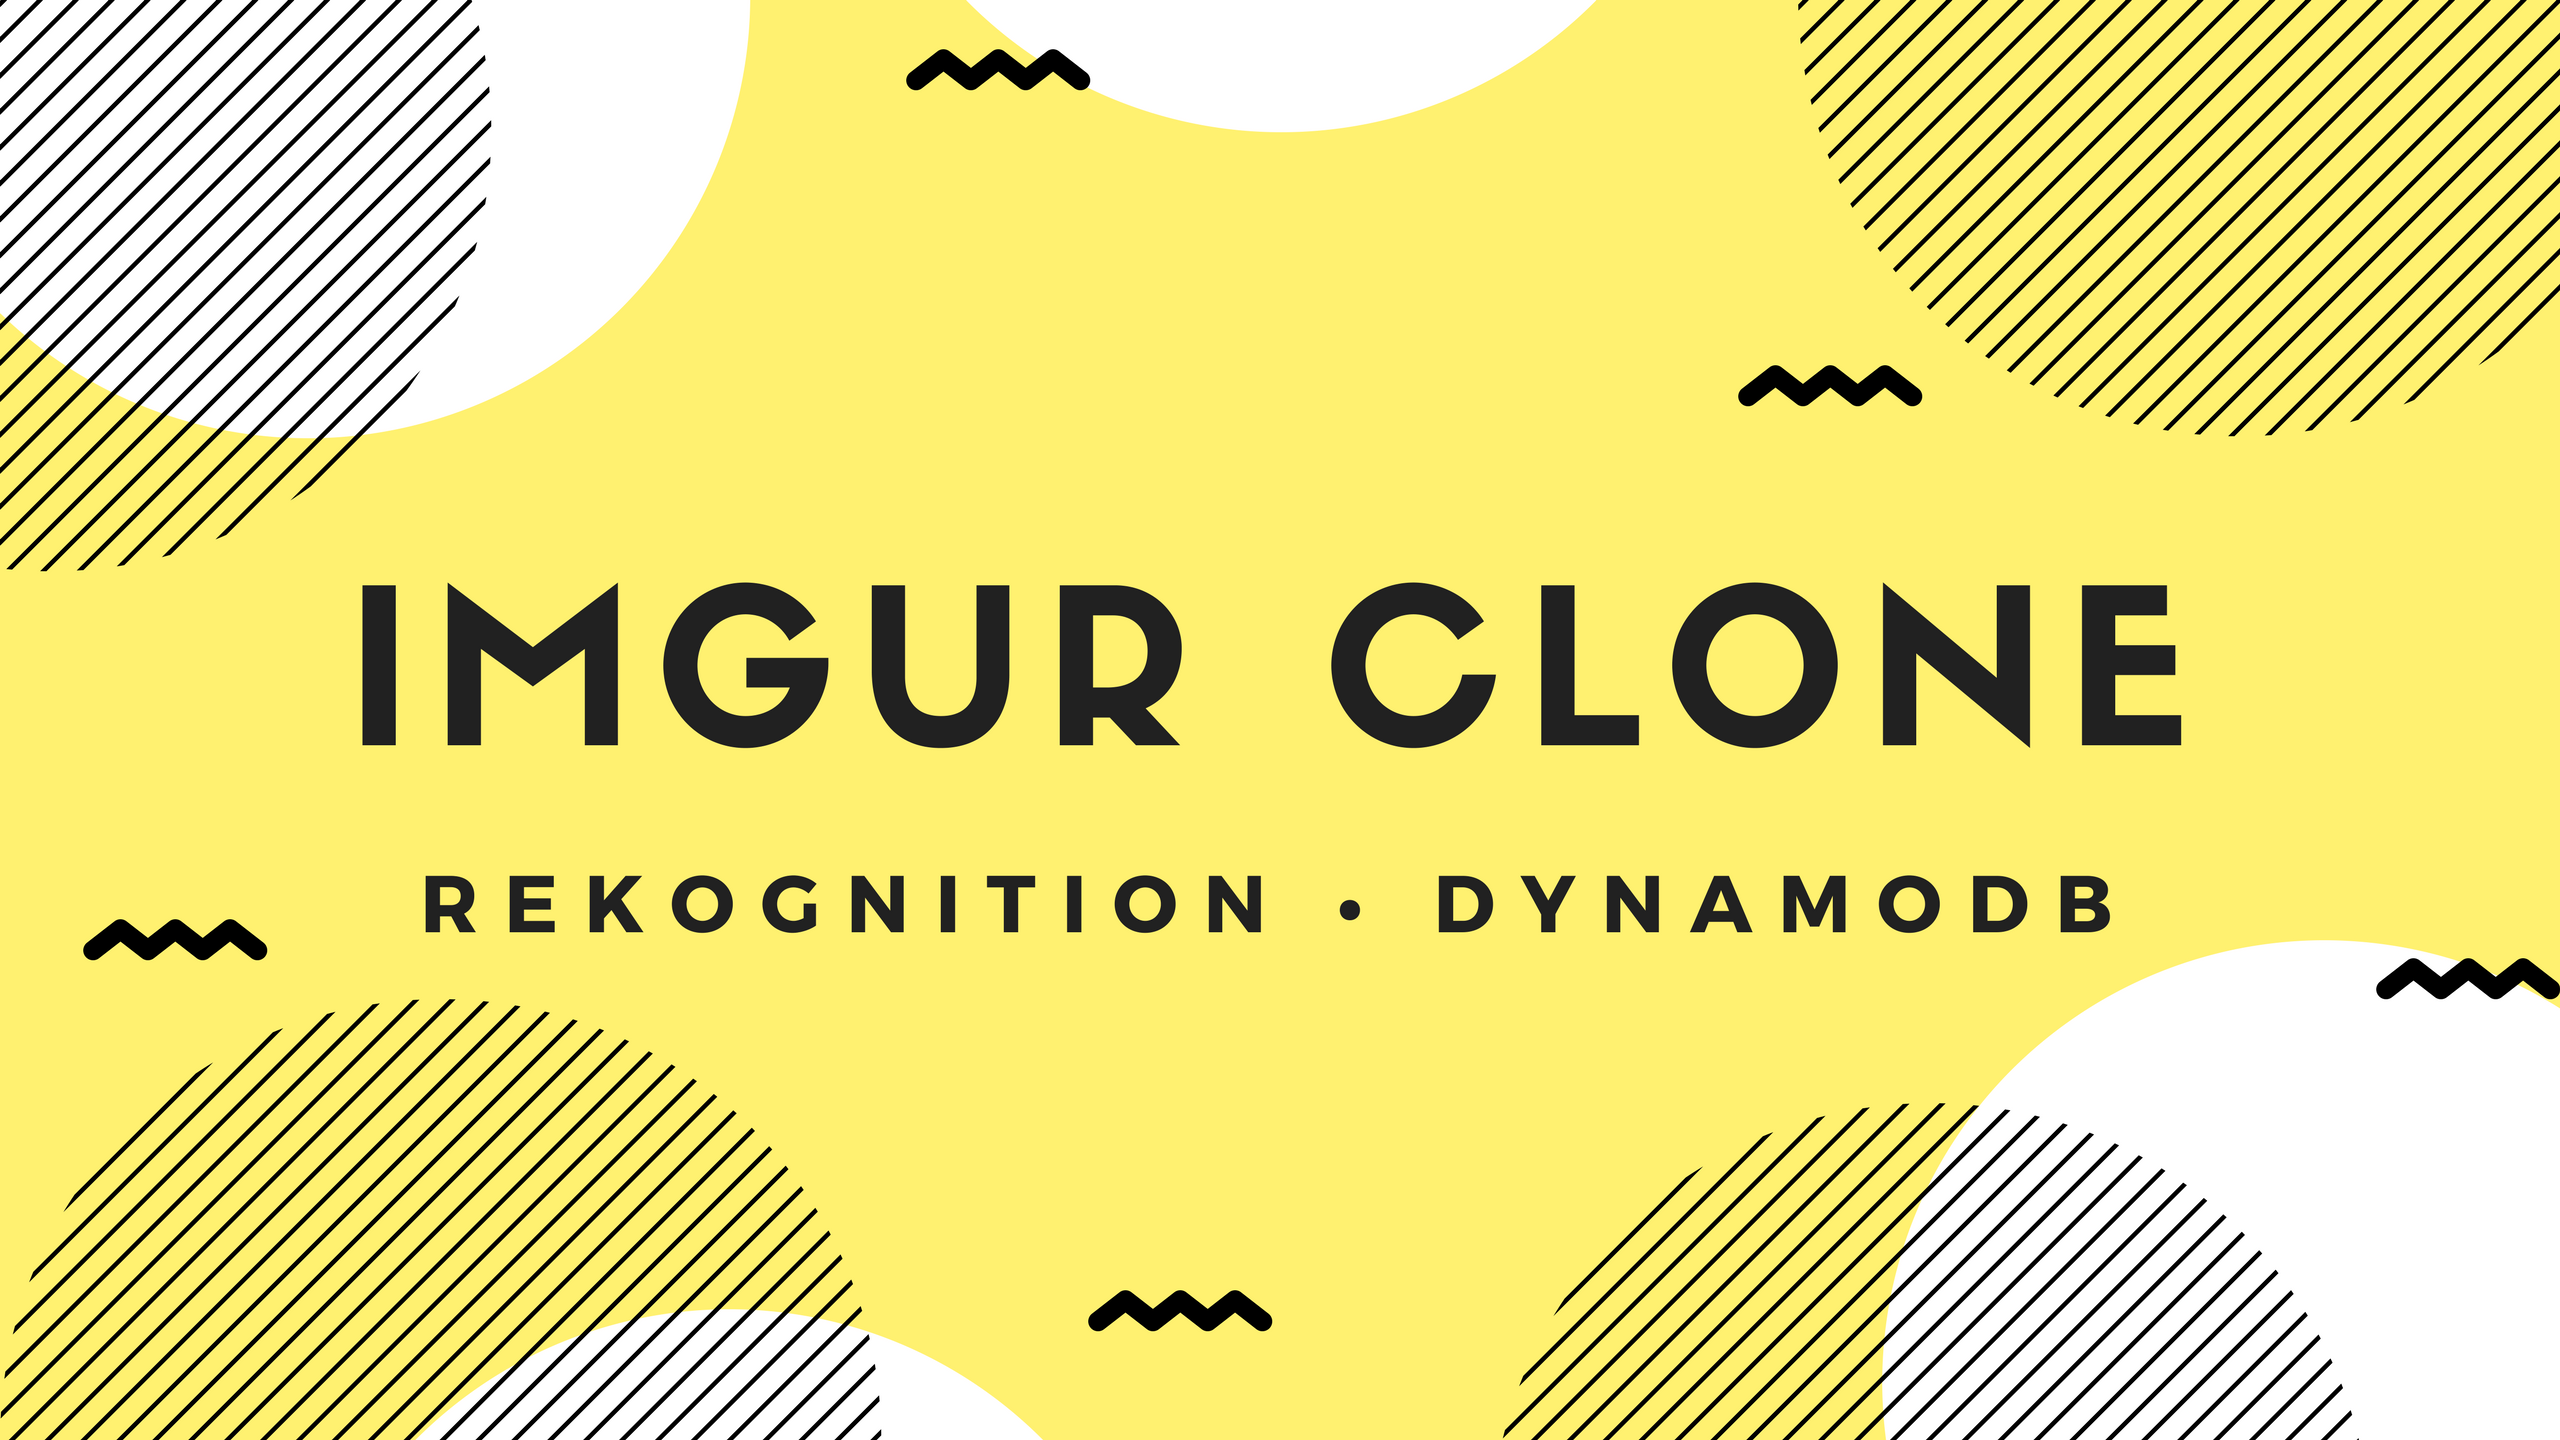 How to build a serverless clone of Imgur using Amazon Rekognition